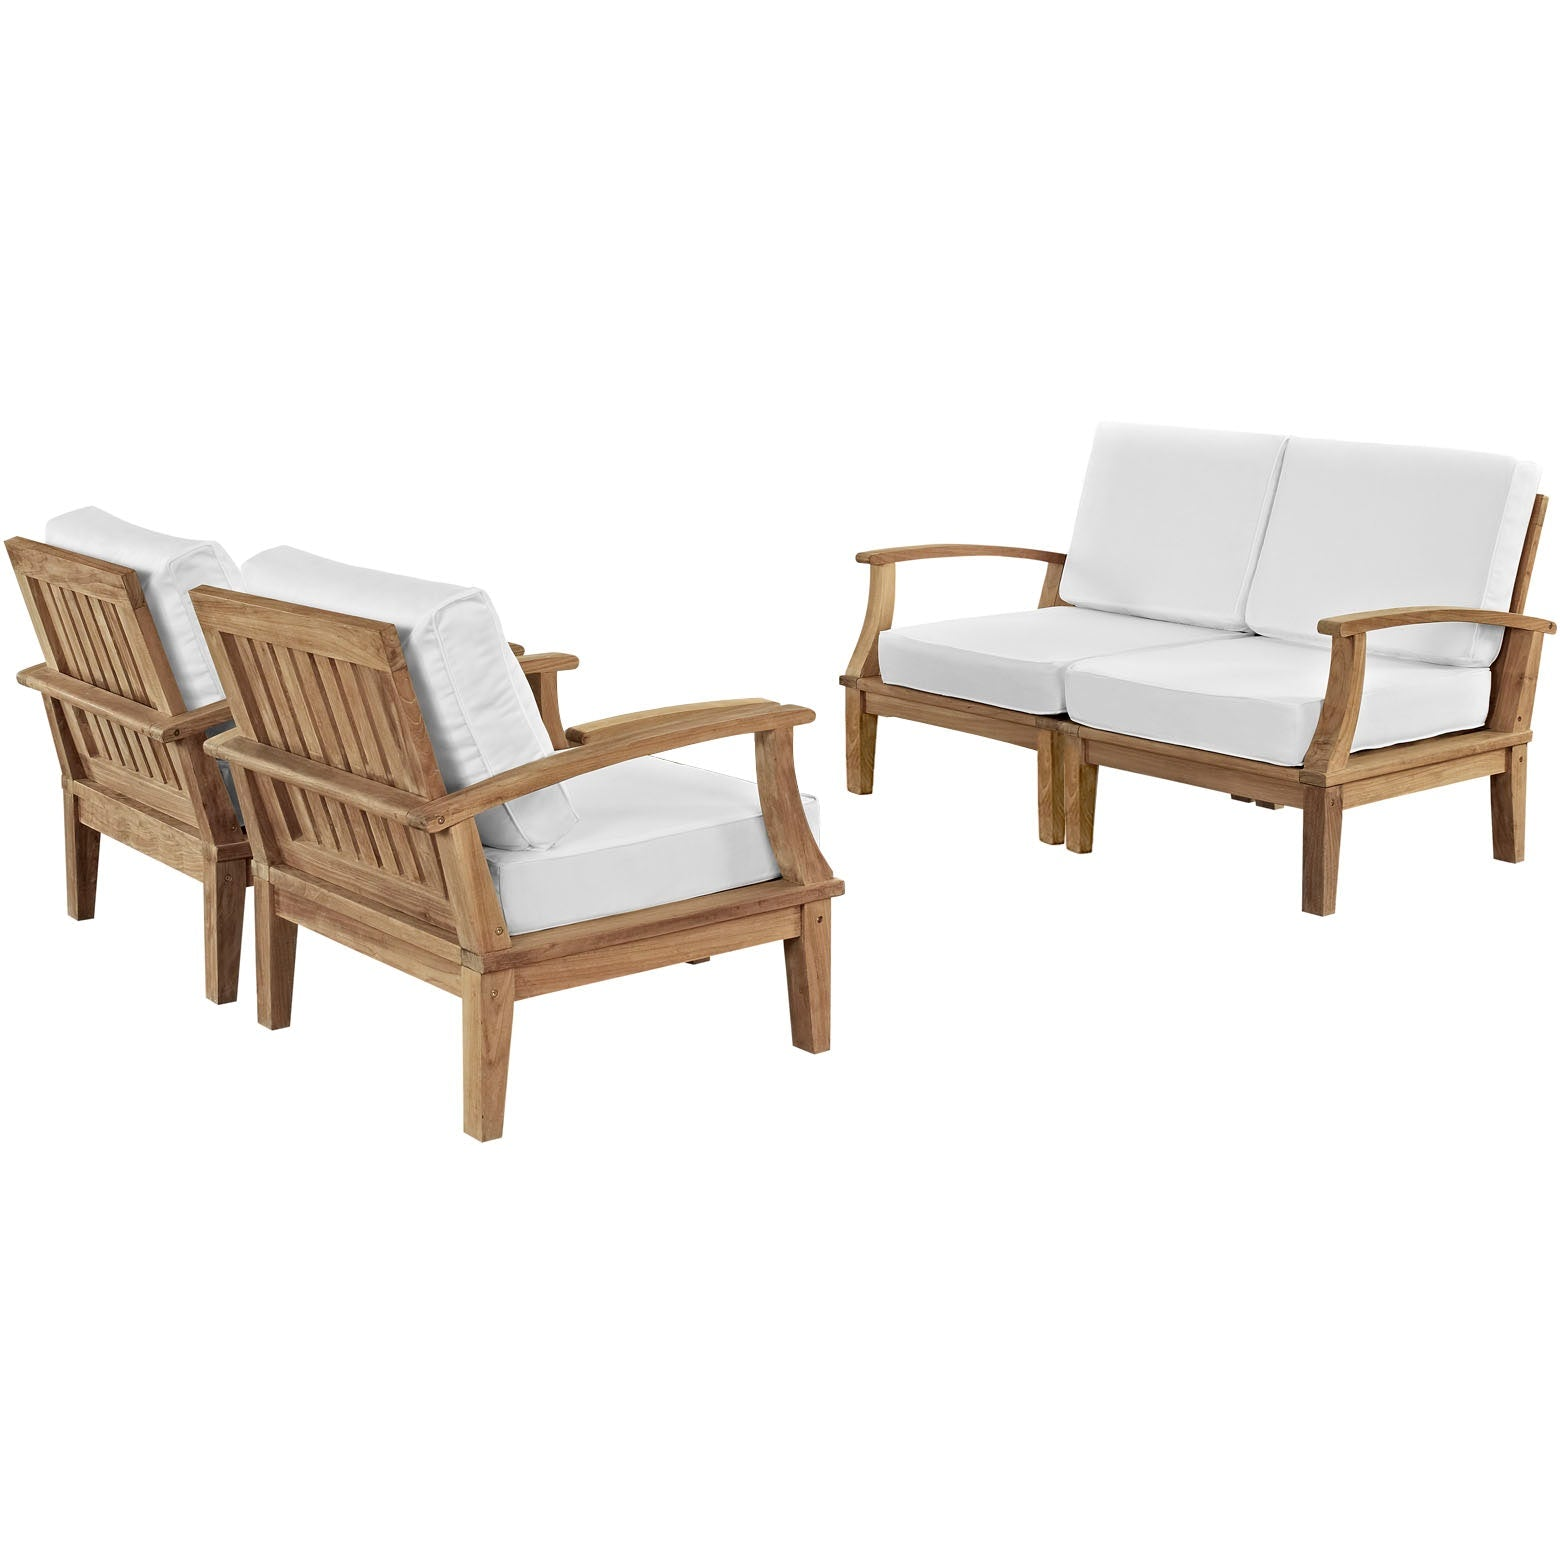 Marina 4 Piece Outdoor Patio Teak Set - Natural White